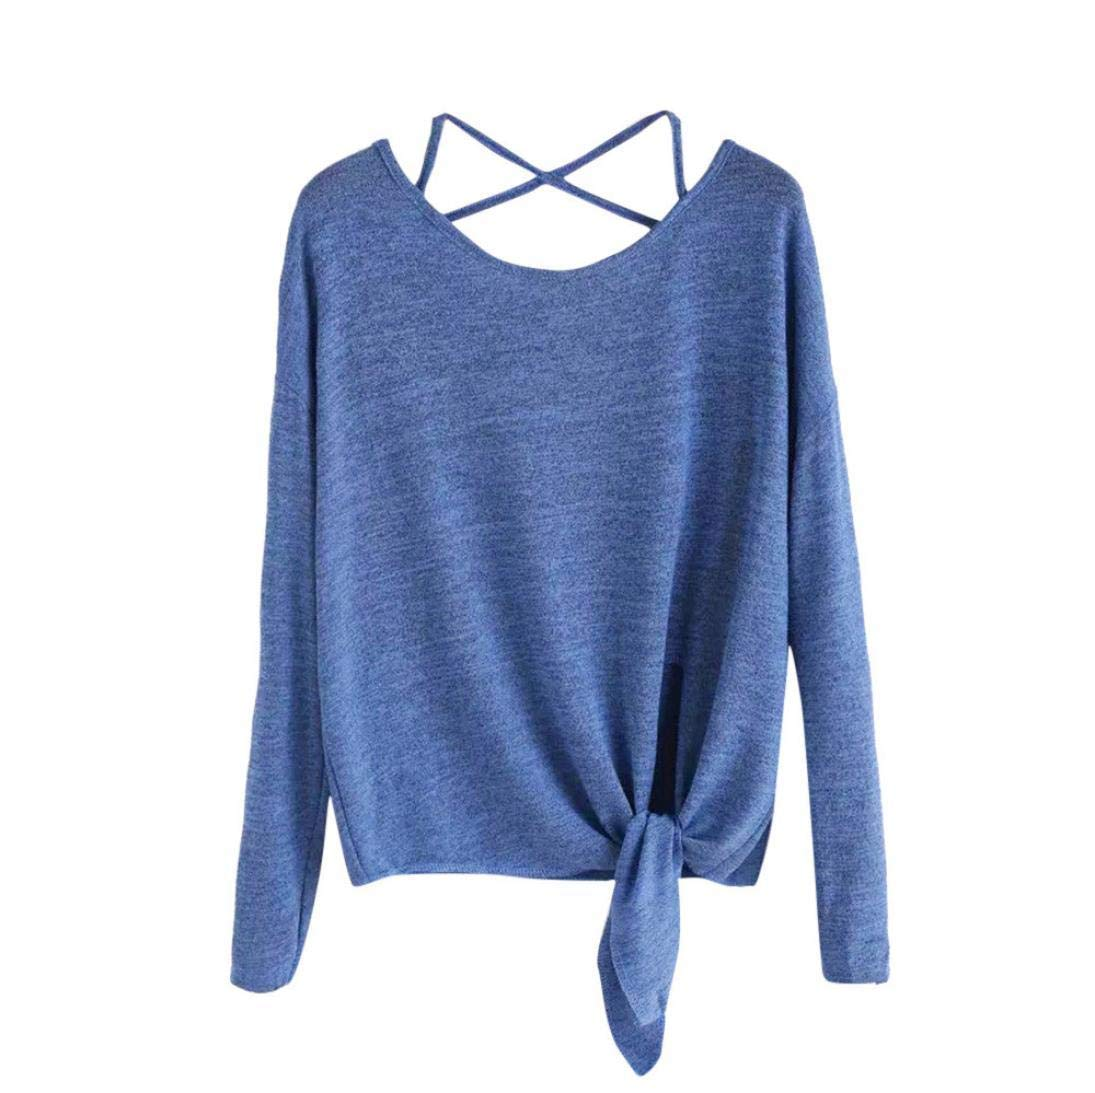 Clearance! Dressin Women's Daily Casual Crow Tied Up Long Sleeve Soild Fasion Tops Blouse T-Shirt Dressin 0814